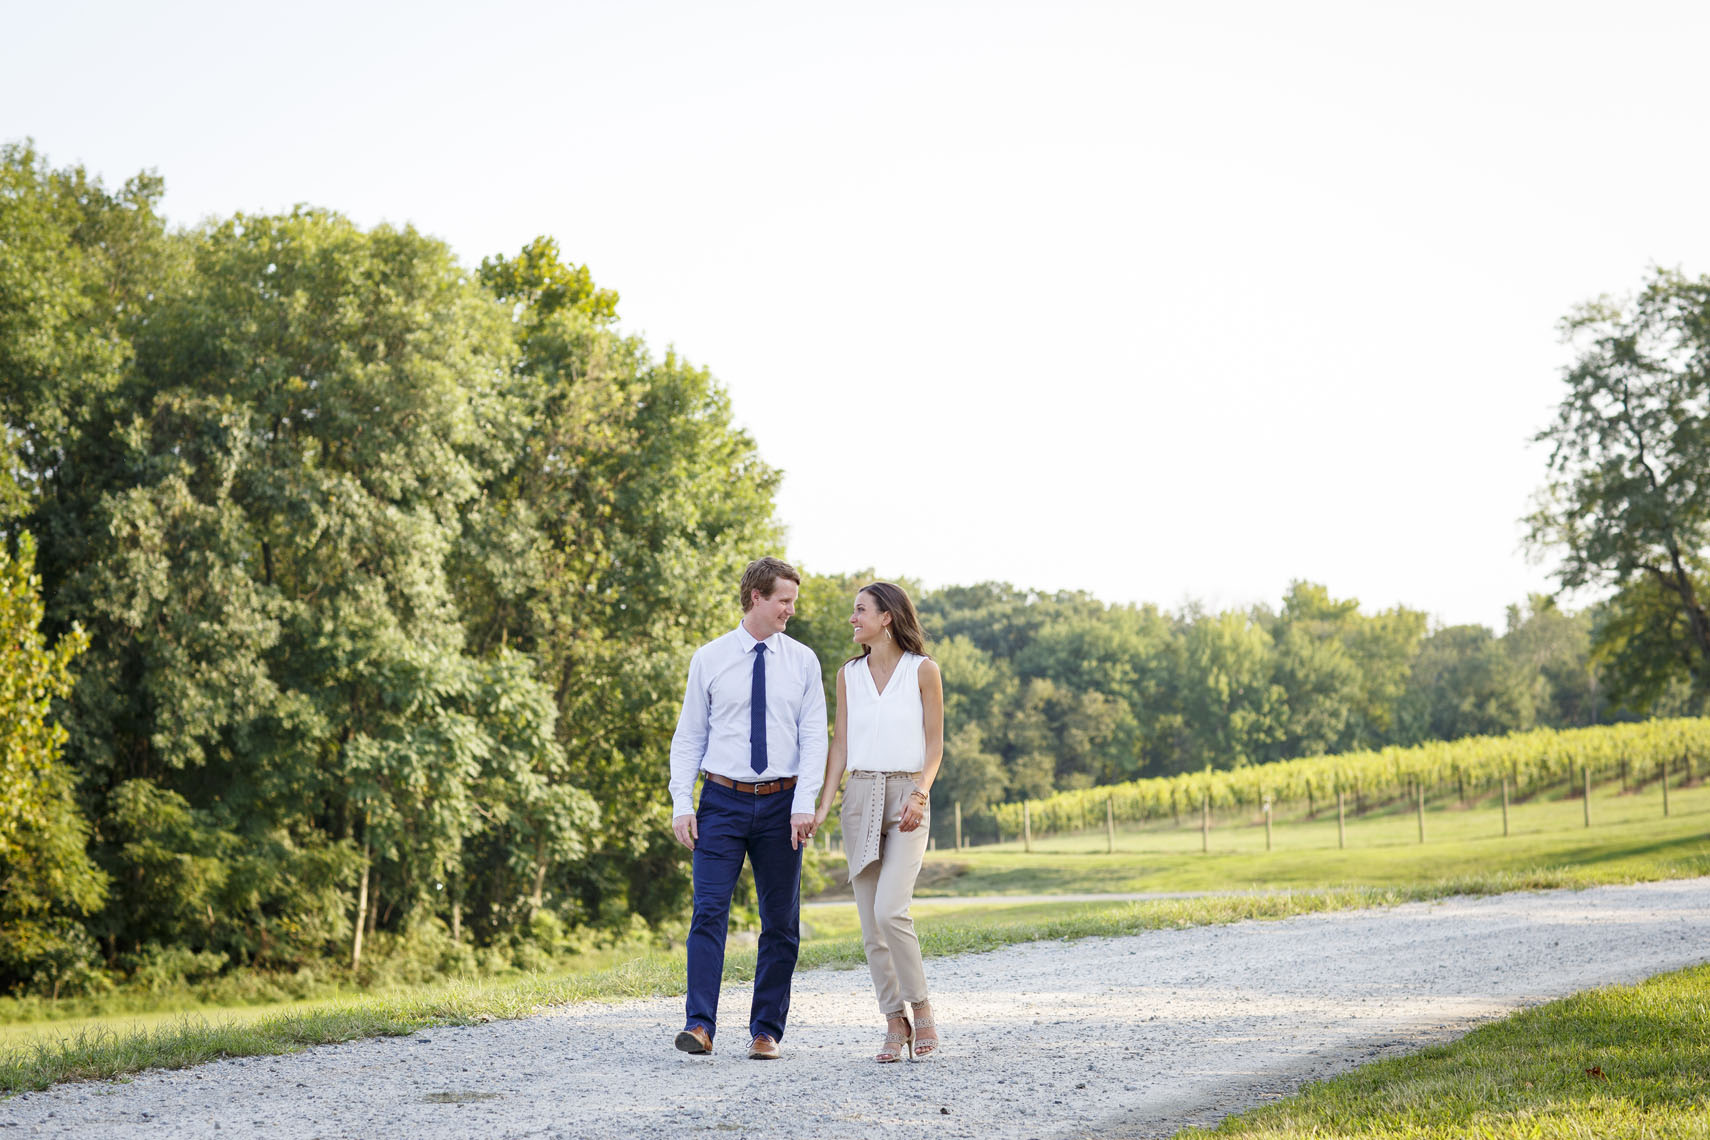 Baltimore Winery Vineyard Engagement Session